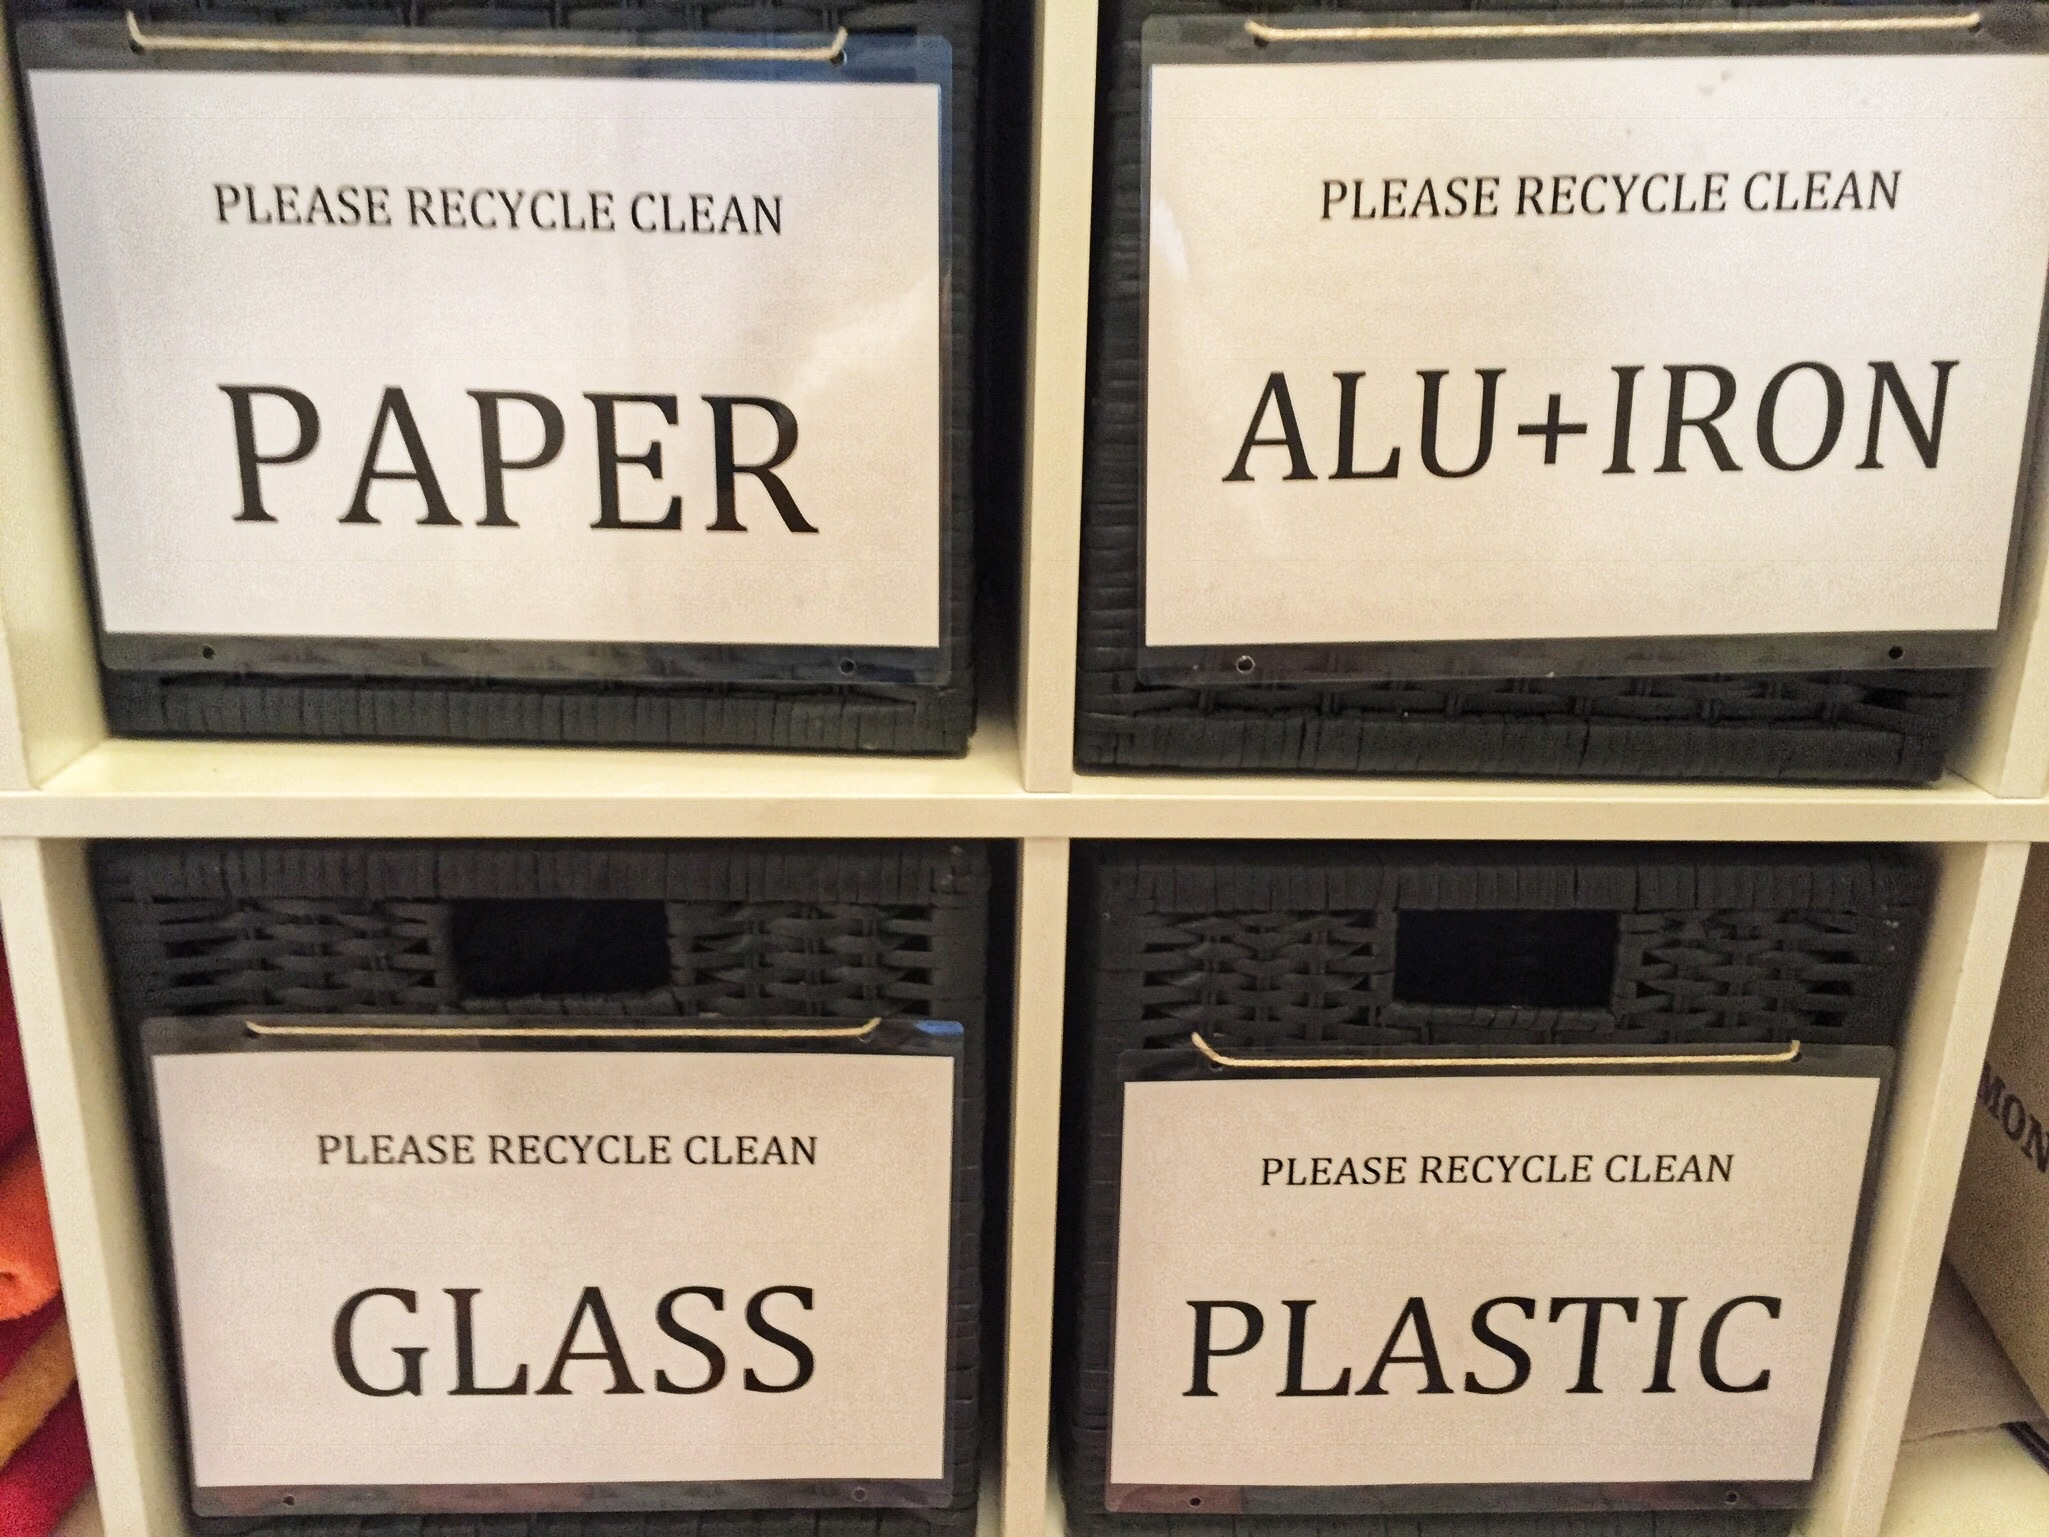 The Swiss are serious about recycling!